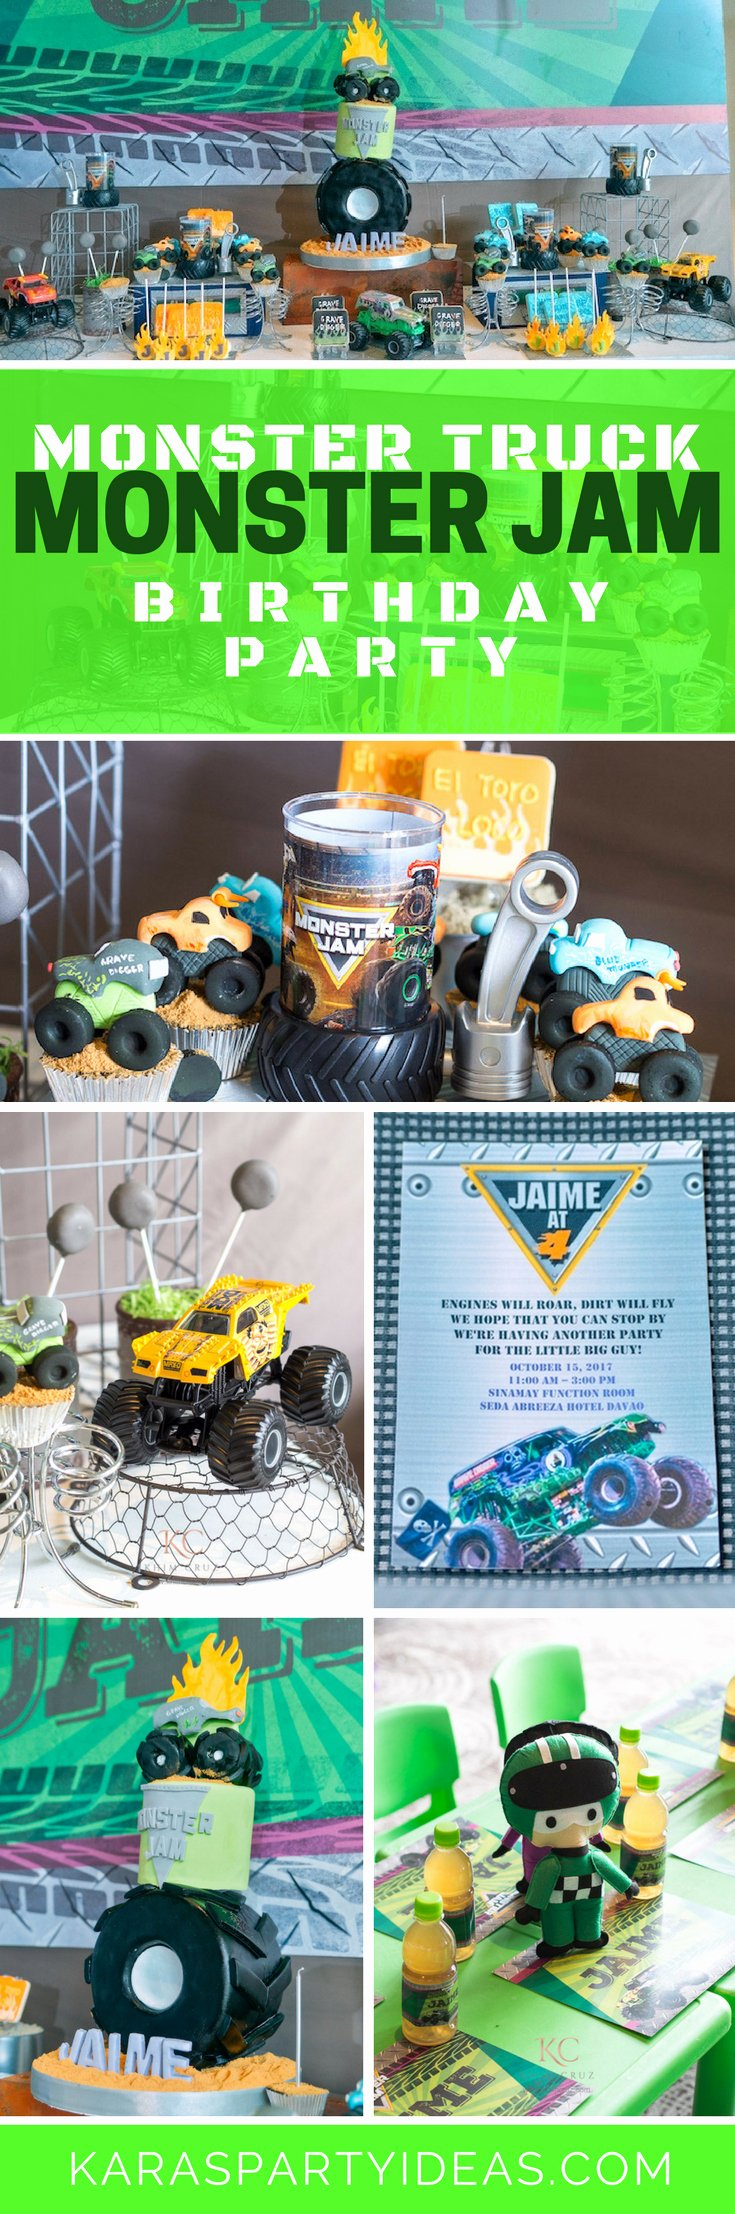 Monster Truck Birthday Decoration Ideas New Kara S Party Ideas Monster Truck Monster Jam Birthday Party